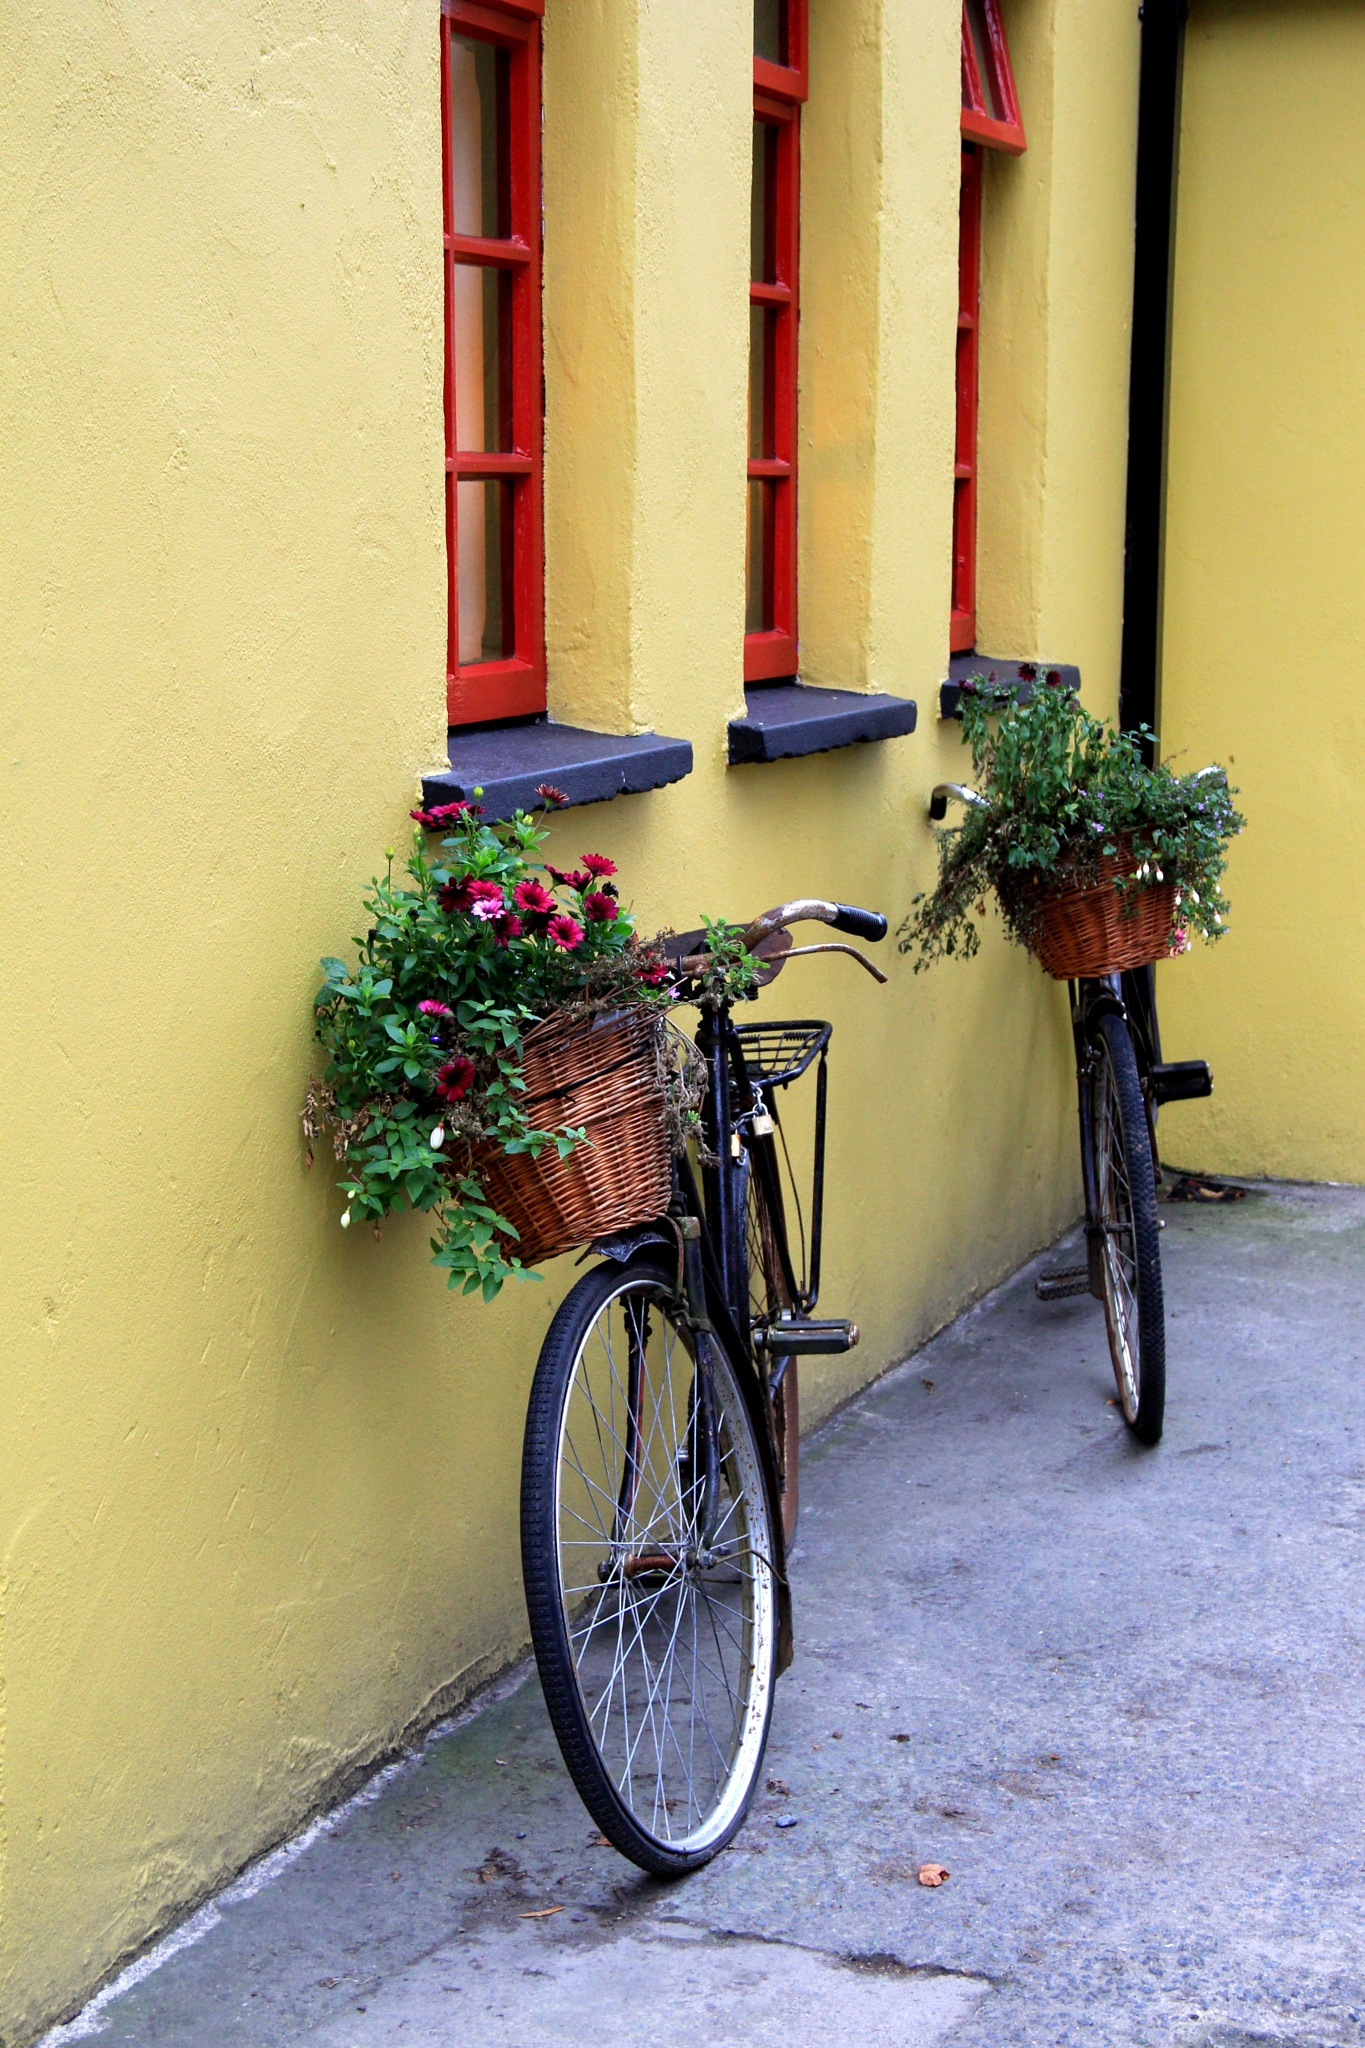 Ireland's beauty ~ everywhere you look by theresaSt.john